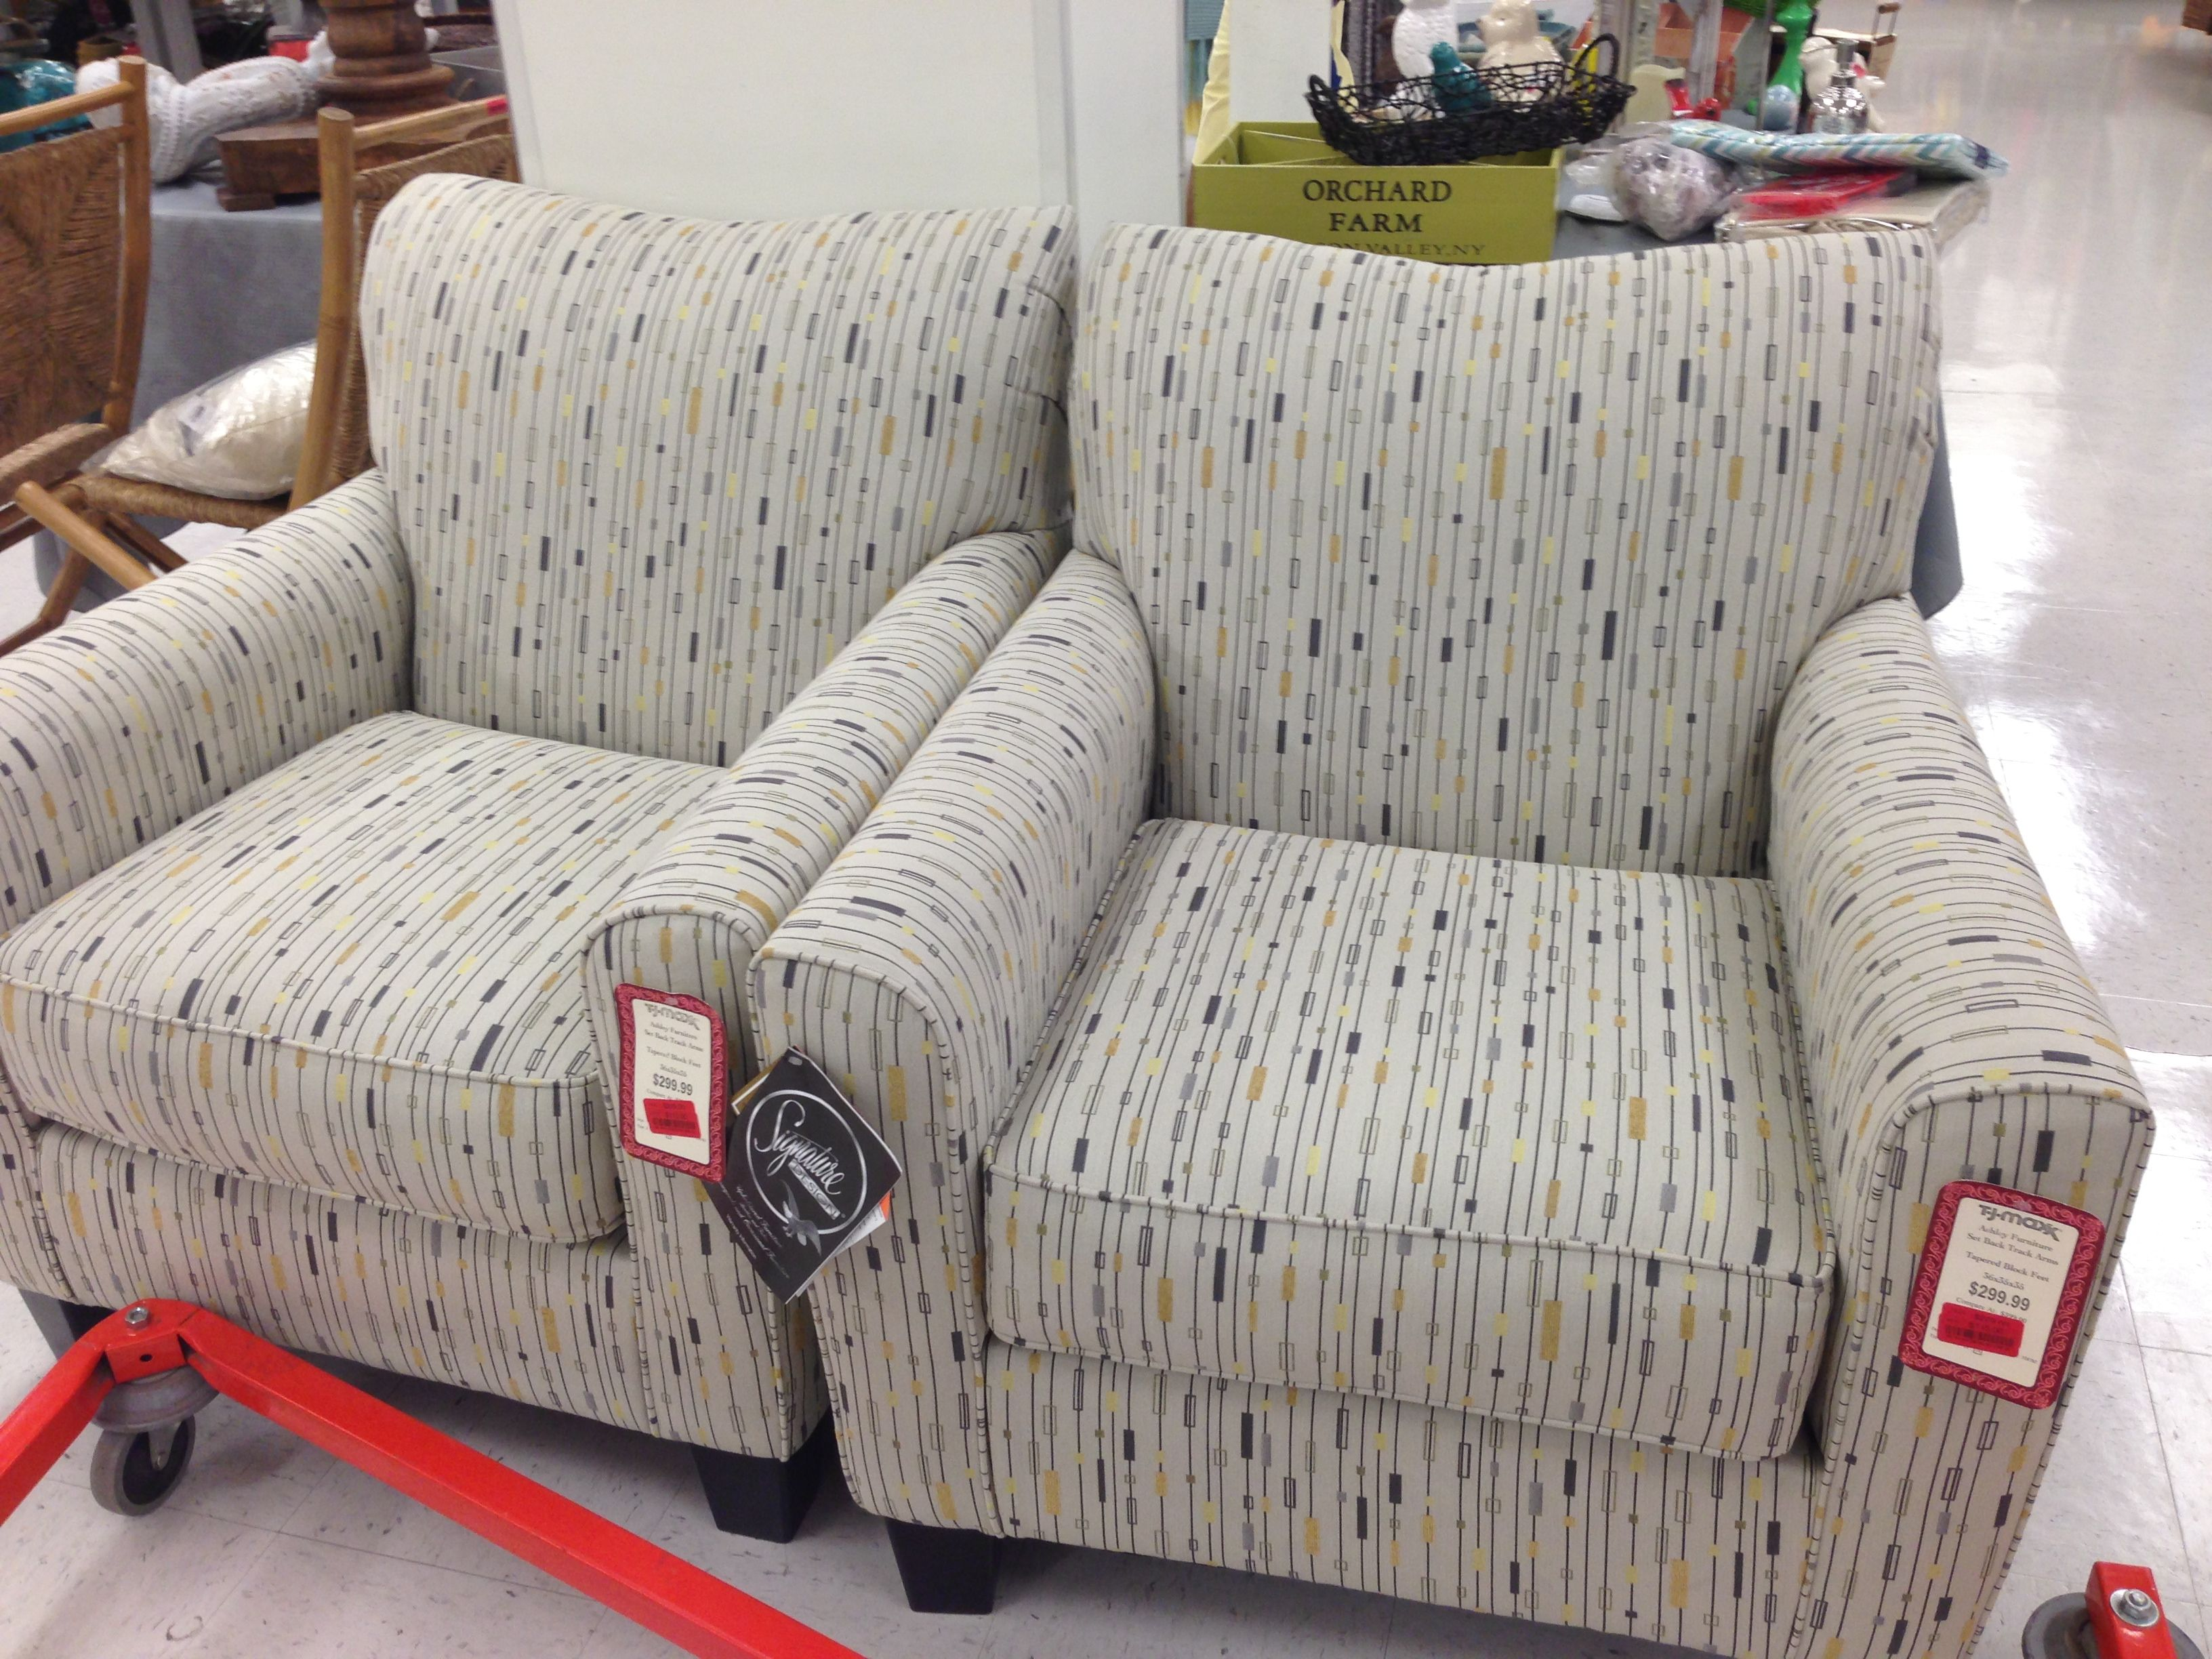 Tj maxx sofa chairs  115 each. Tj maxx sofa chairs  115 each   furnishings   Pinterest